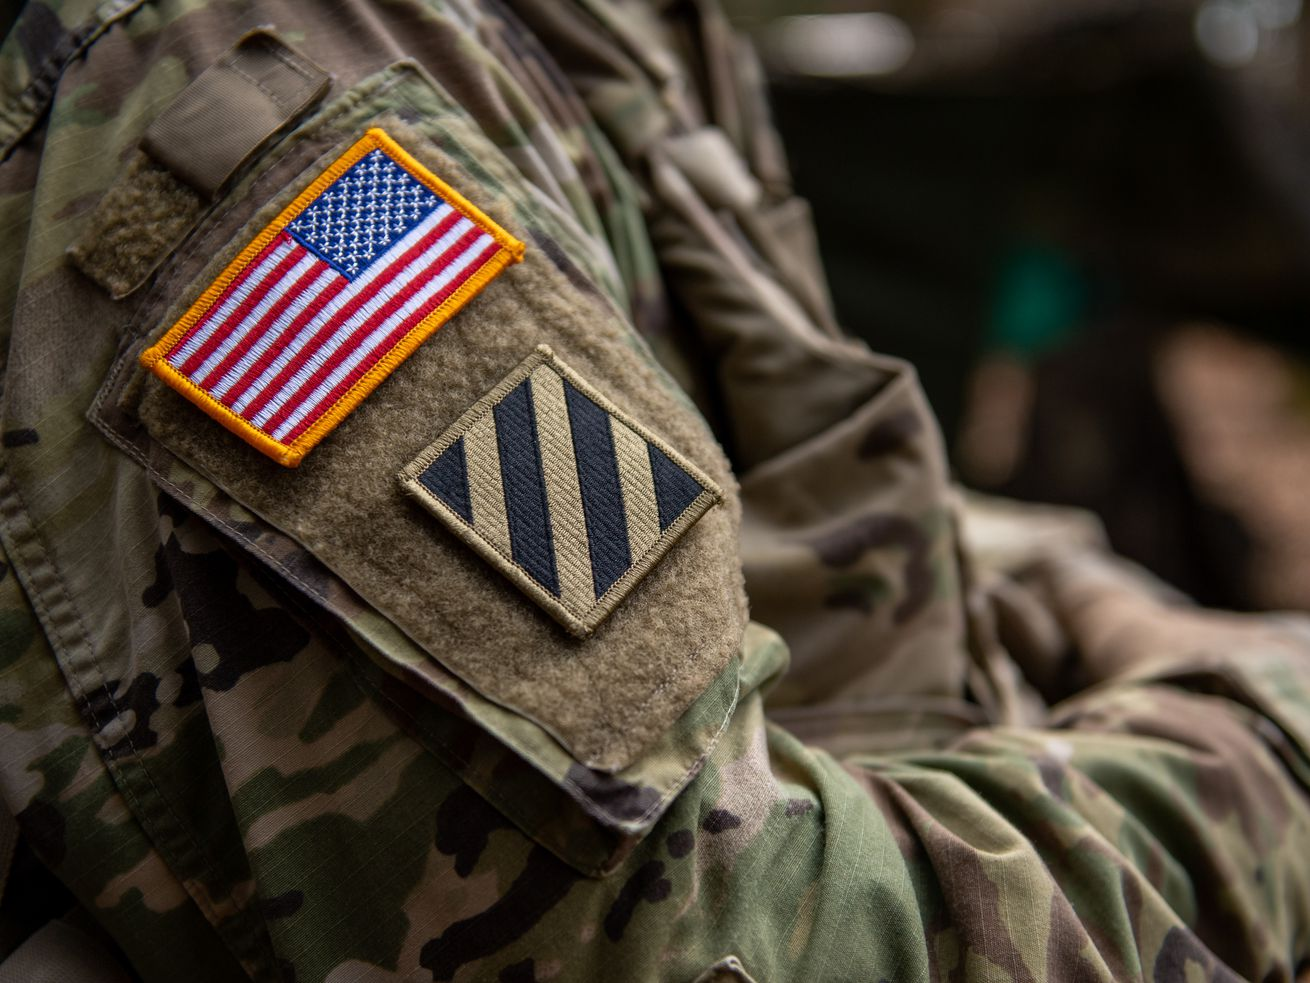 A US flag on the shoulder of a soldier during military exercises near Hohenfels, Germany, on April 9, 2019.